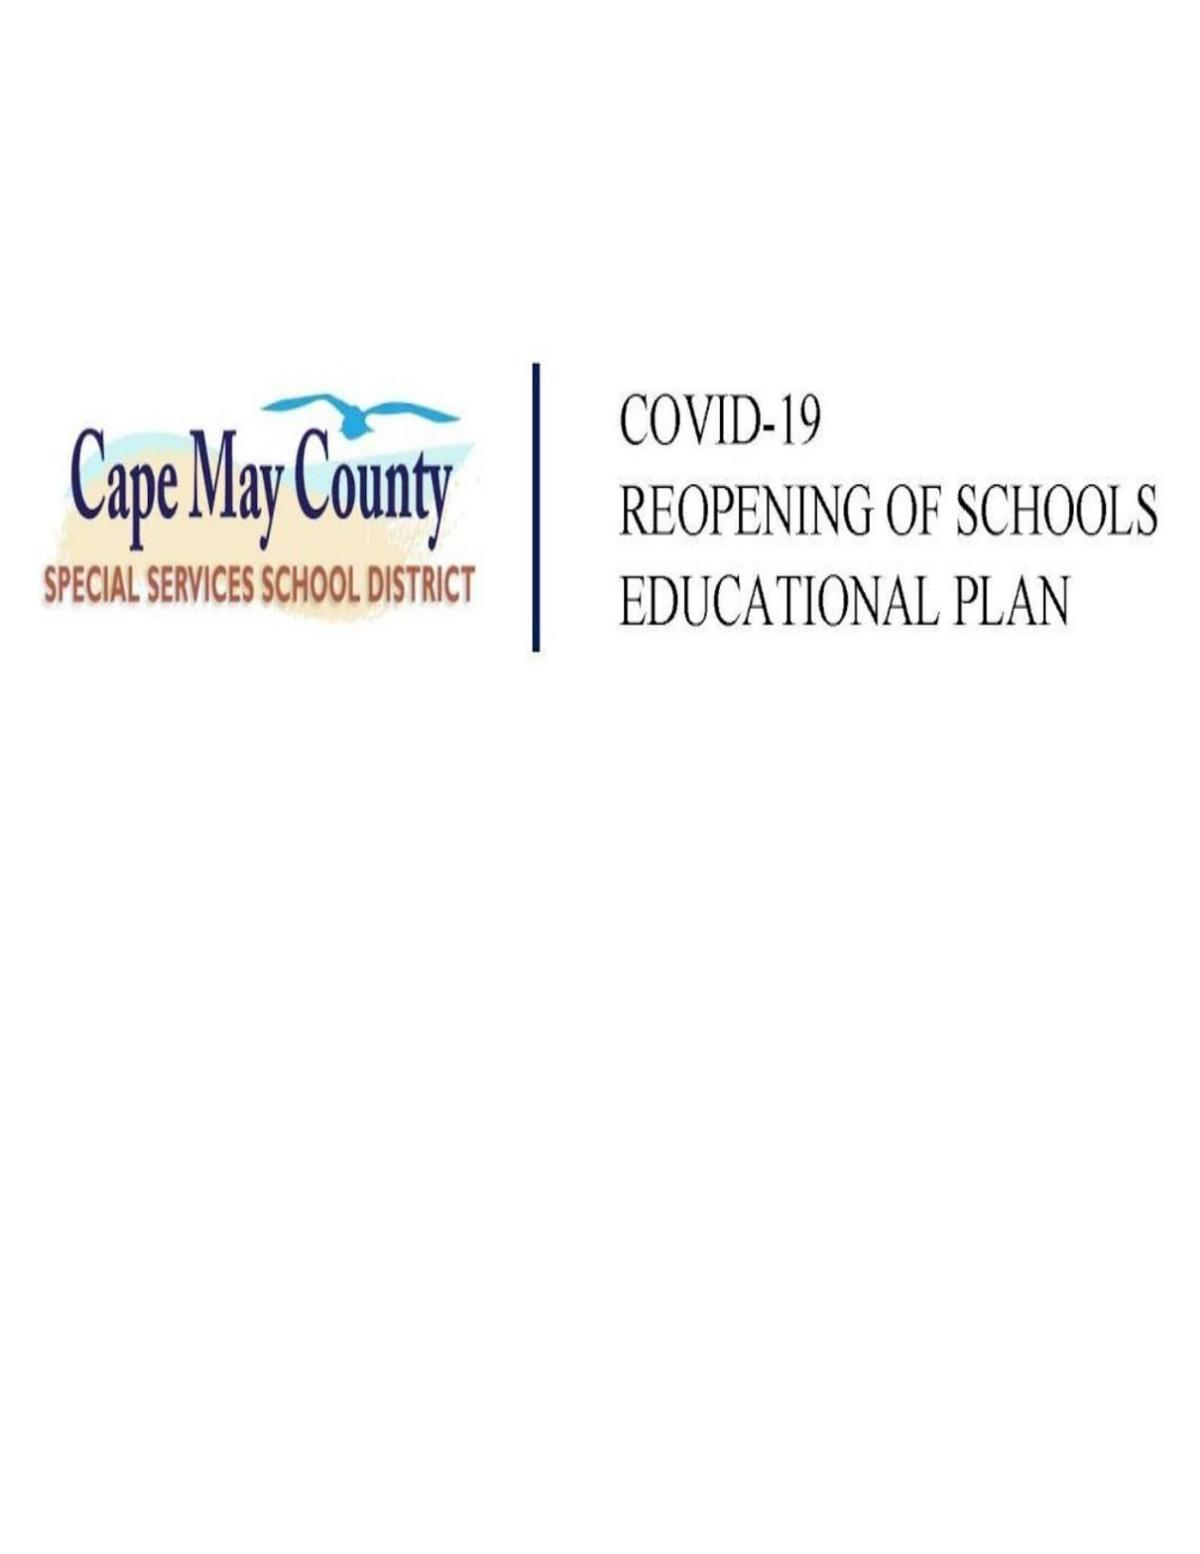 Cape May County Special Services School District reopening plan